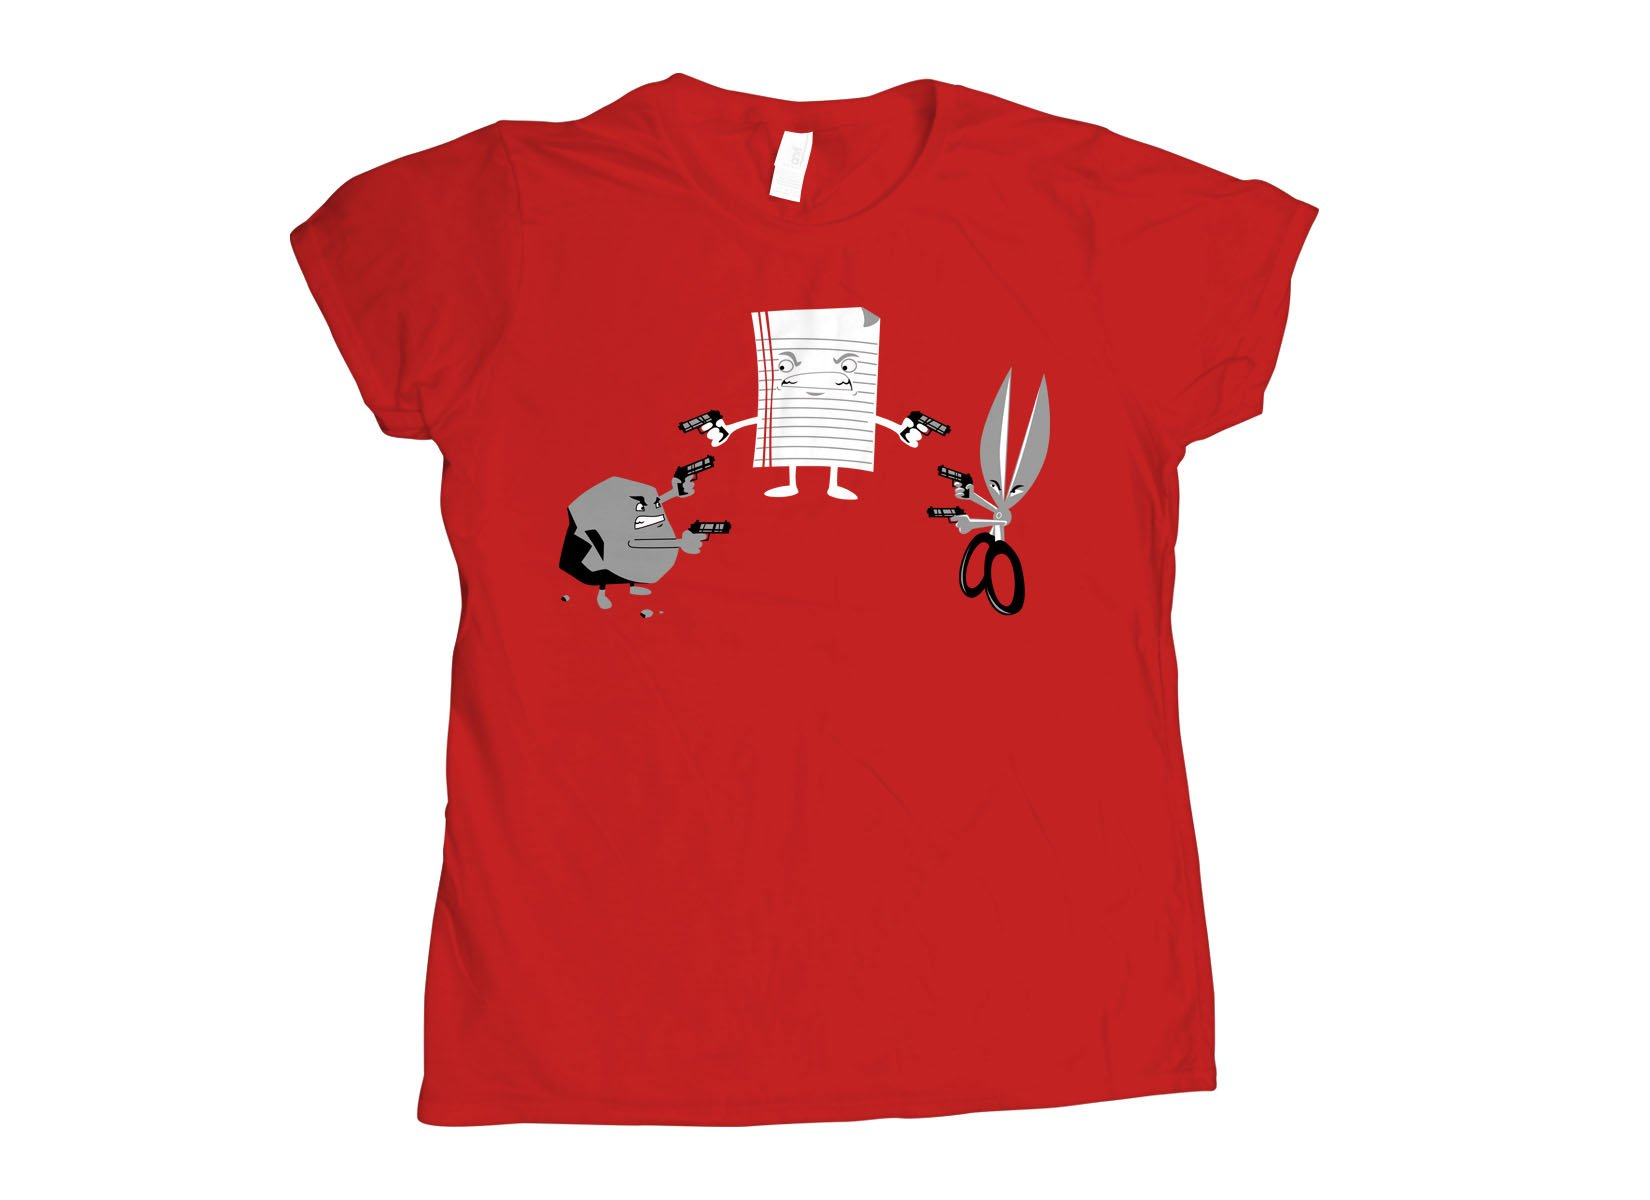 Mexican Standoff on Womens T-Shirt